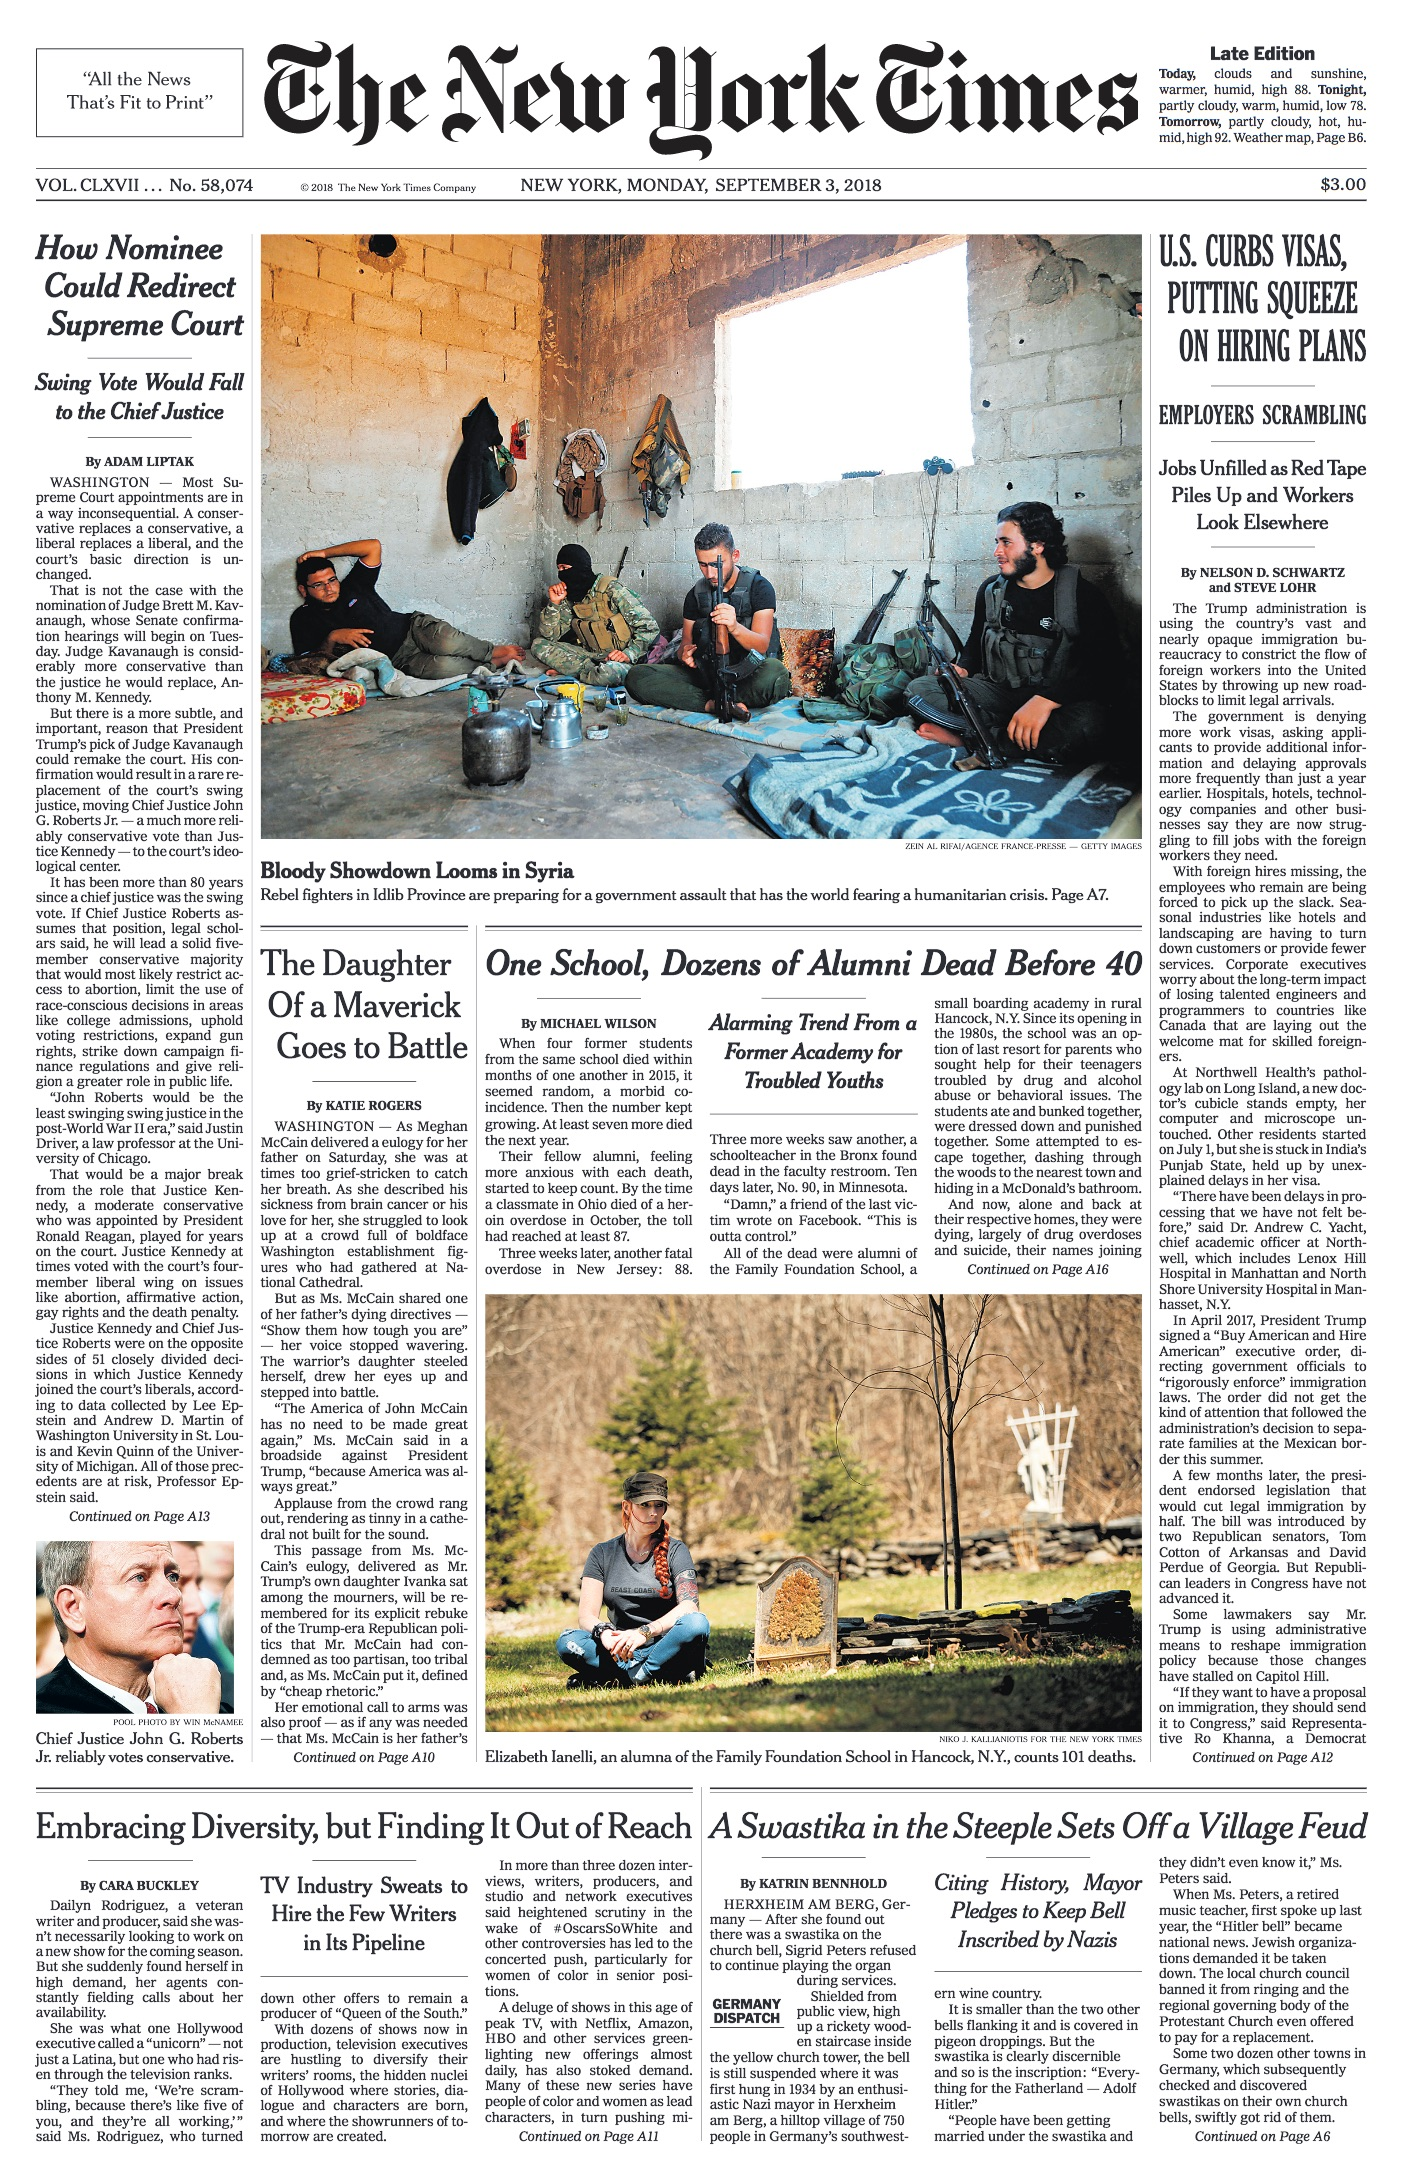 NYTimes_FrontPage_090318.jpg